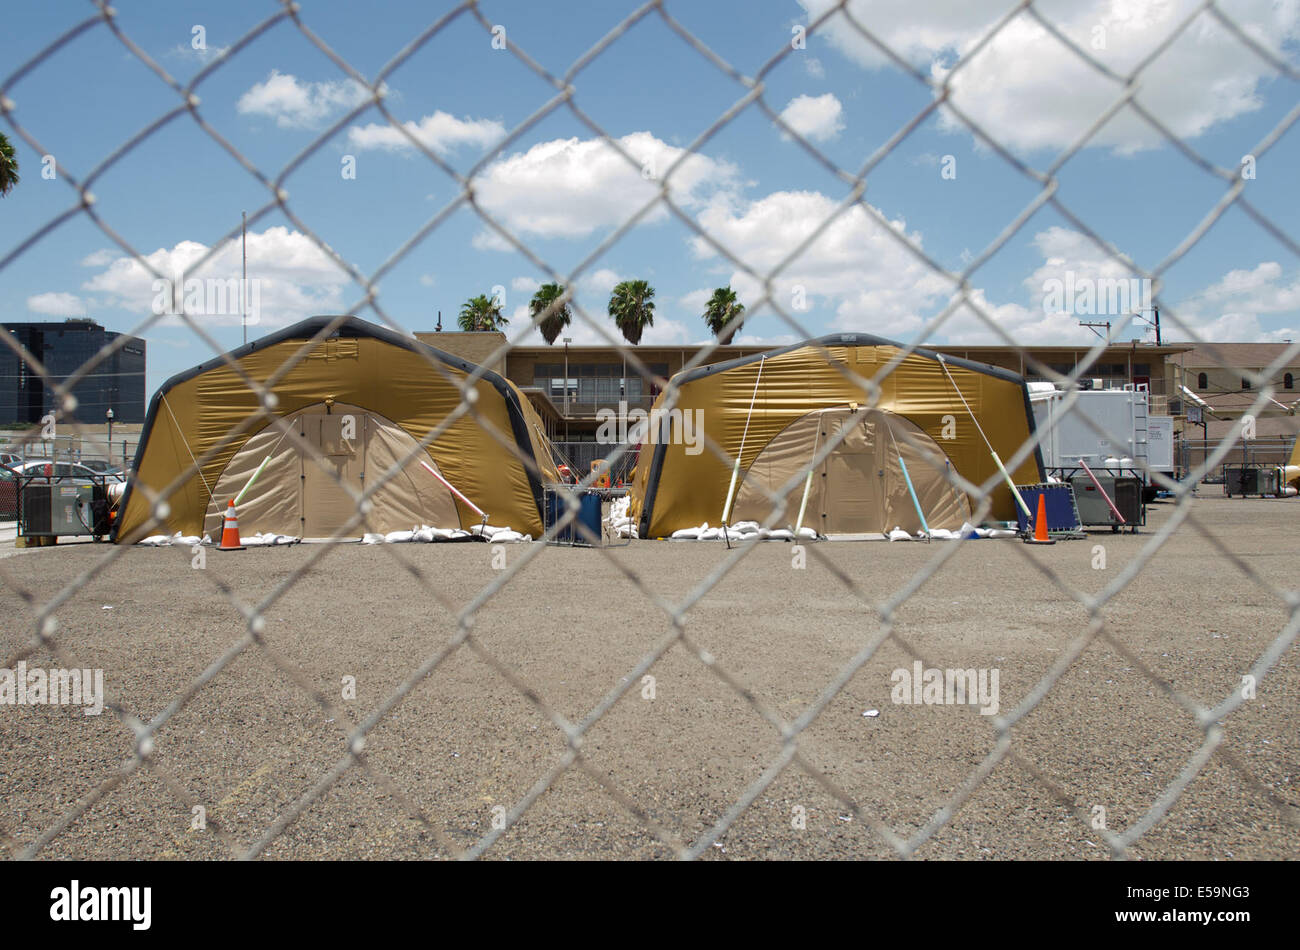 Air inflated tents at the McAllen Texas Sacred Church gives immigrants a place to rest between their legal processing and traveling to meet family in the ... & McAllen Texas USA. 14th July 2014. Air inflated tents at the ...